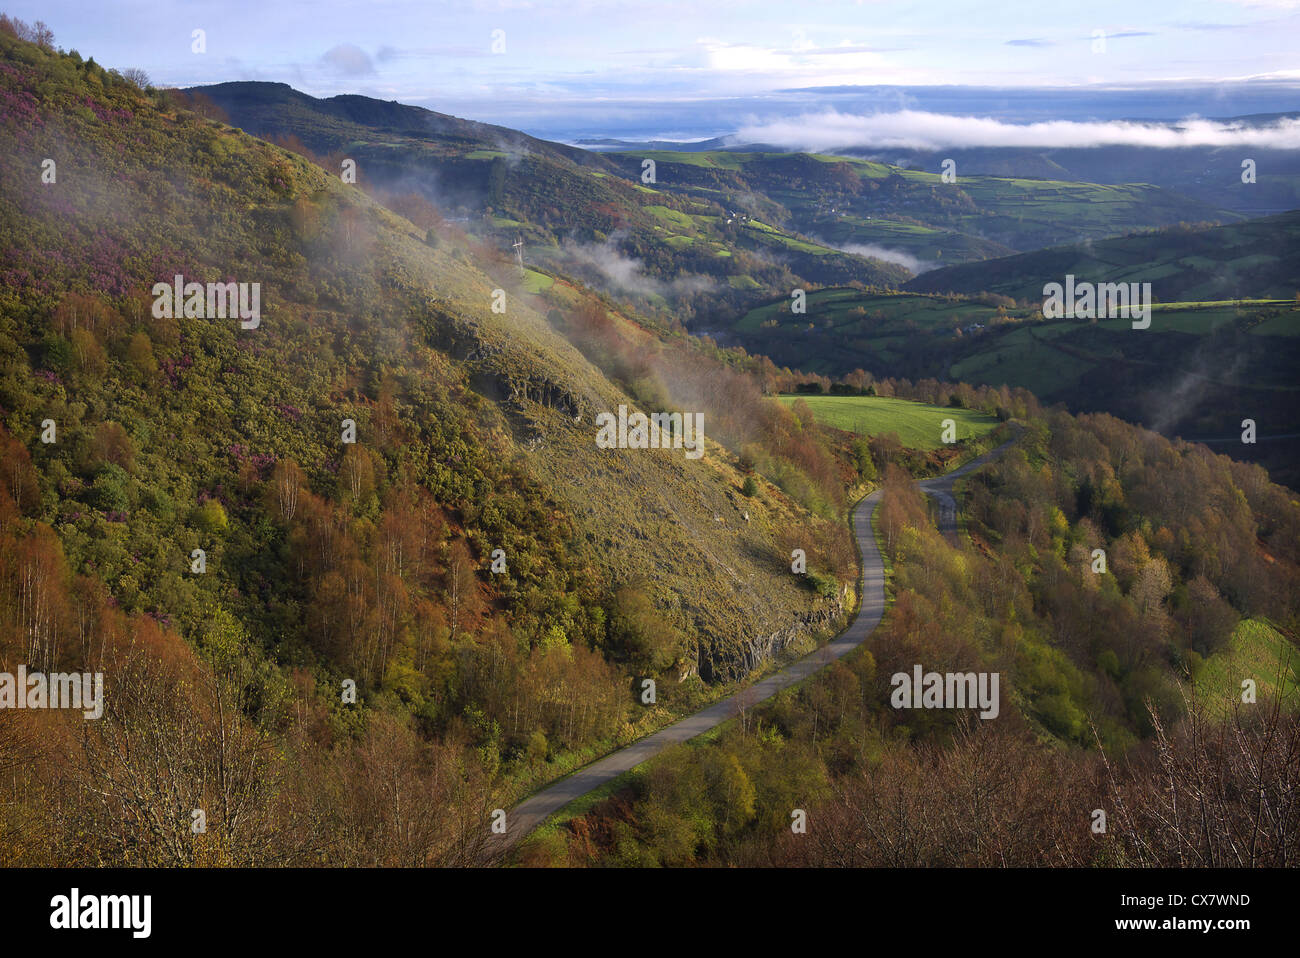 Countryside near Linares in the Galicia region of Spain. - Stock Image